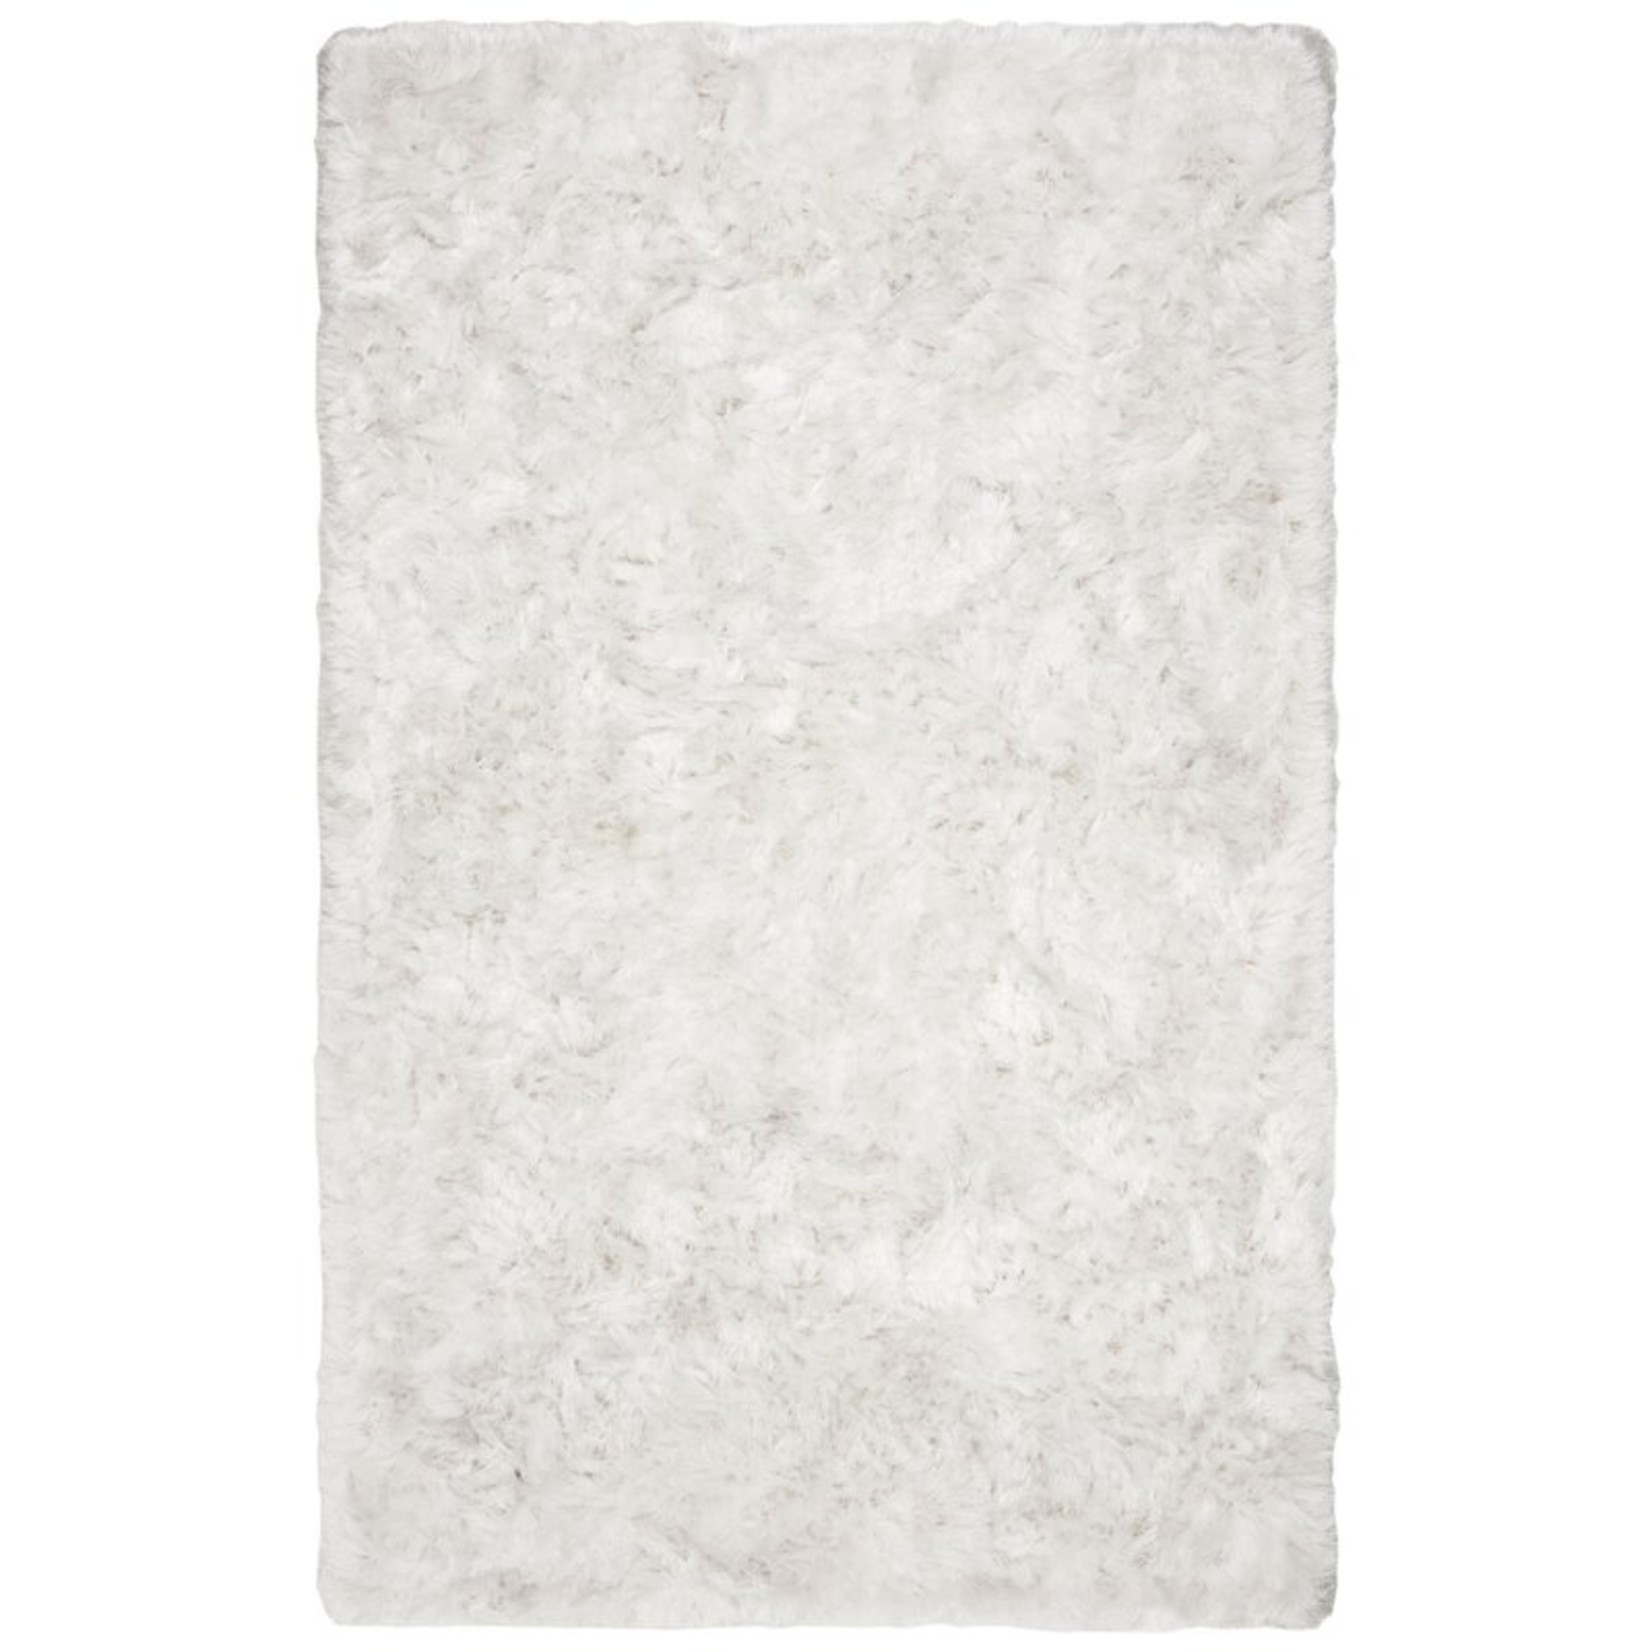 *4' x 6' - Morrell Hand-Tufted Cotton Ivory Area Rug